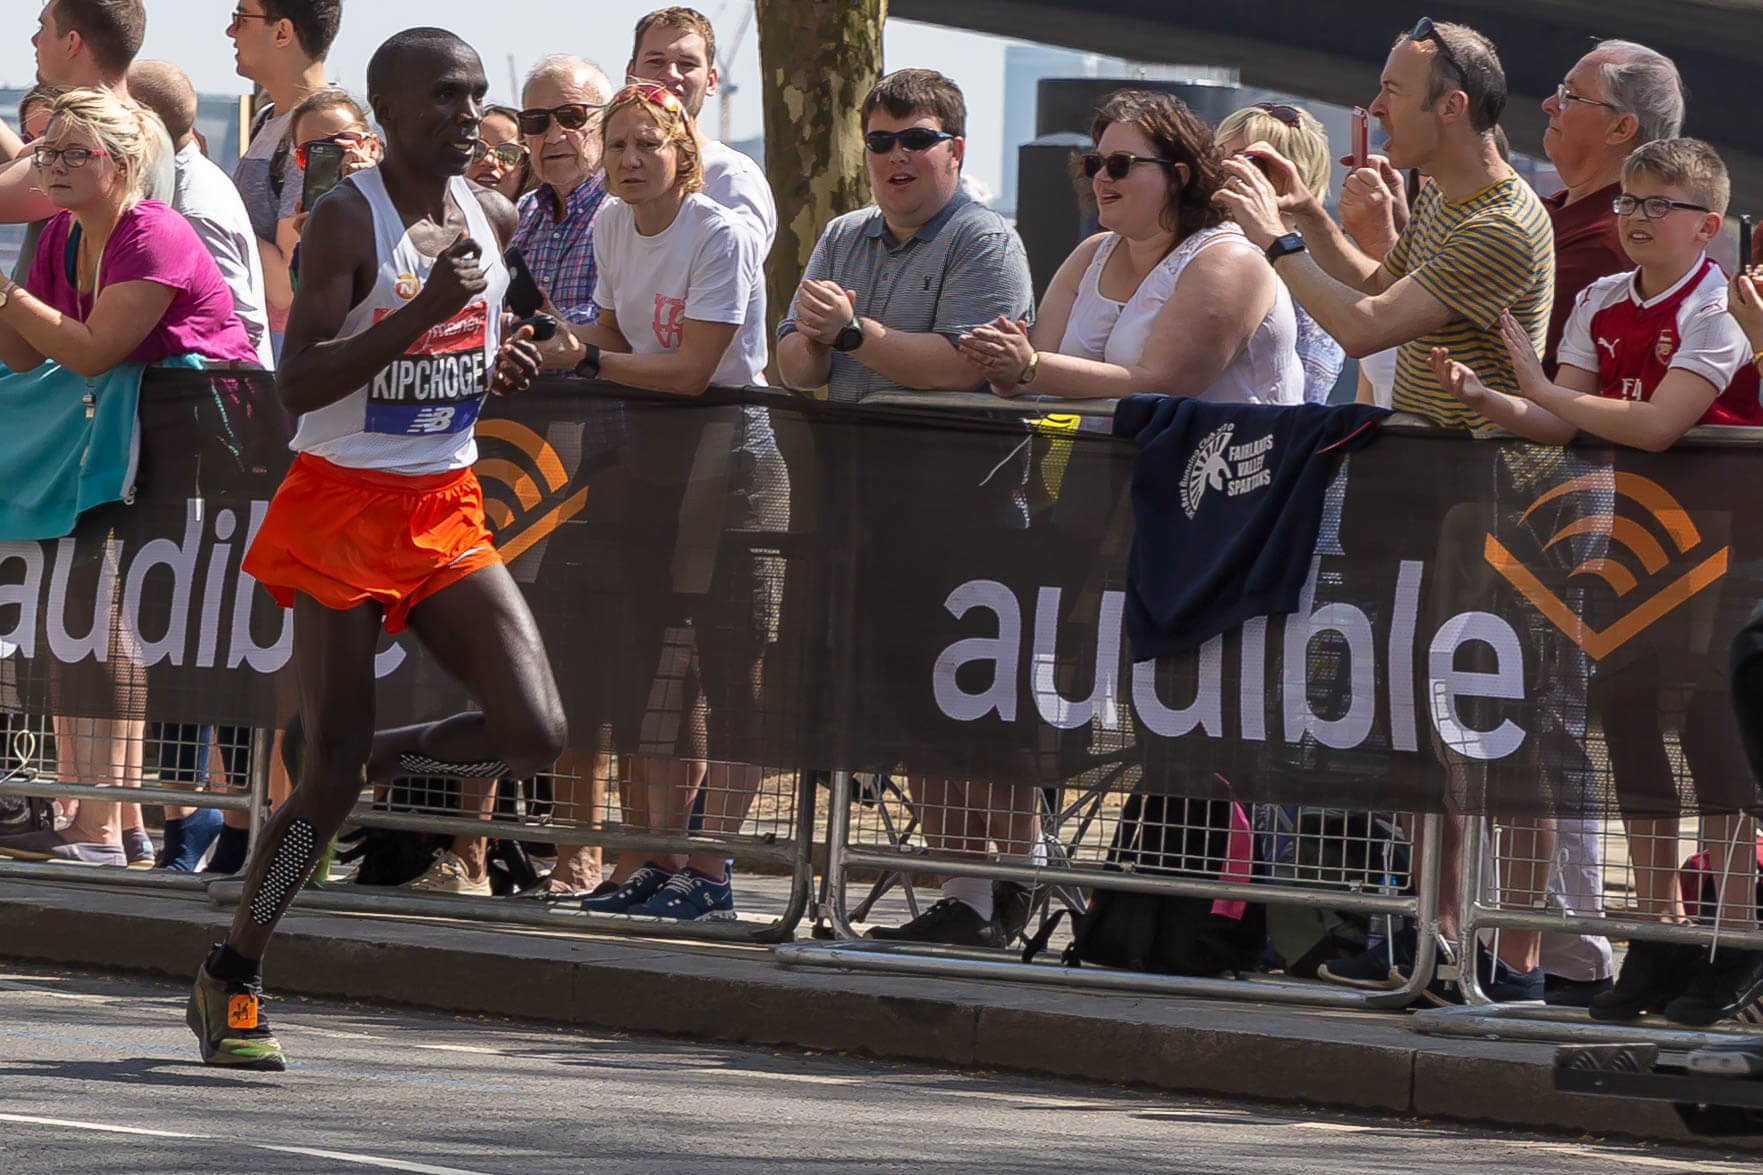 Eliud Kipchoge at the London Marathon 2018. Photo: Marco Verch via Flickr.